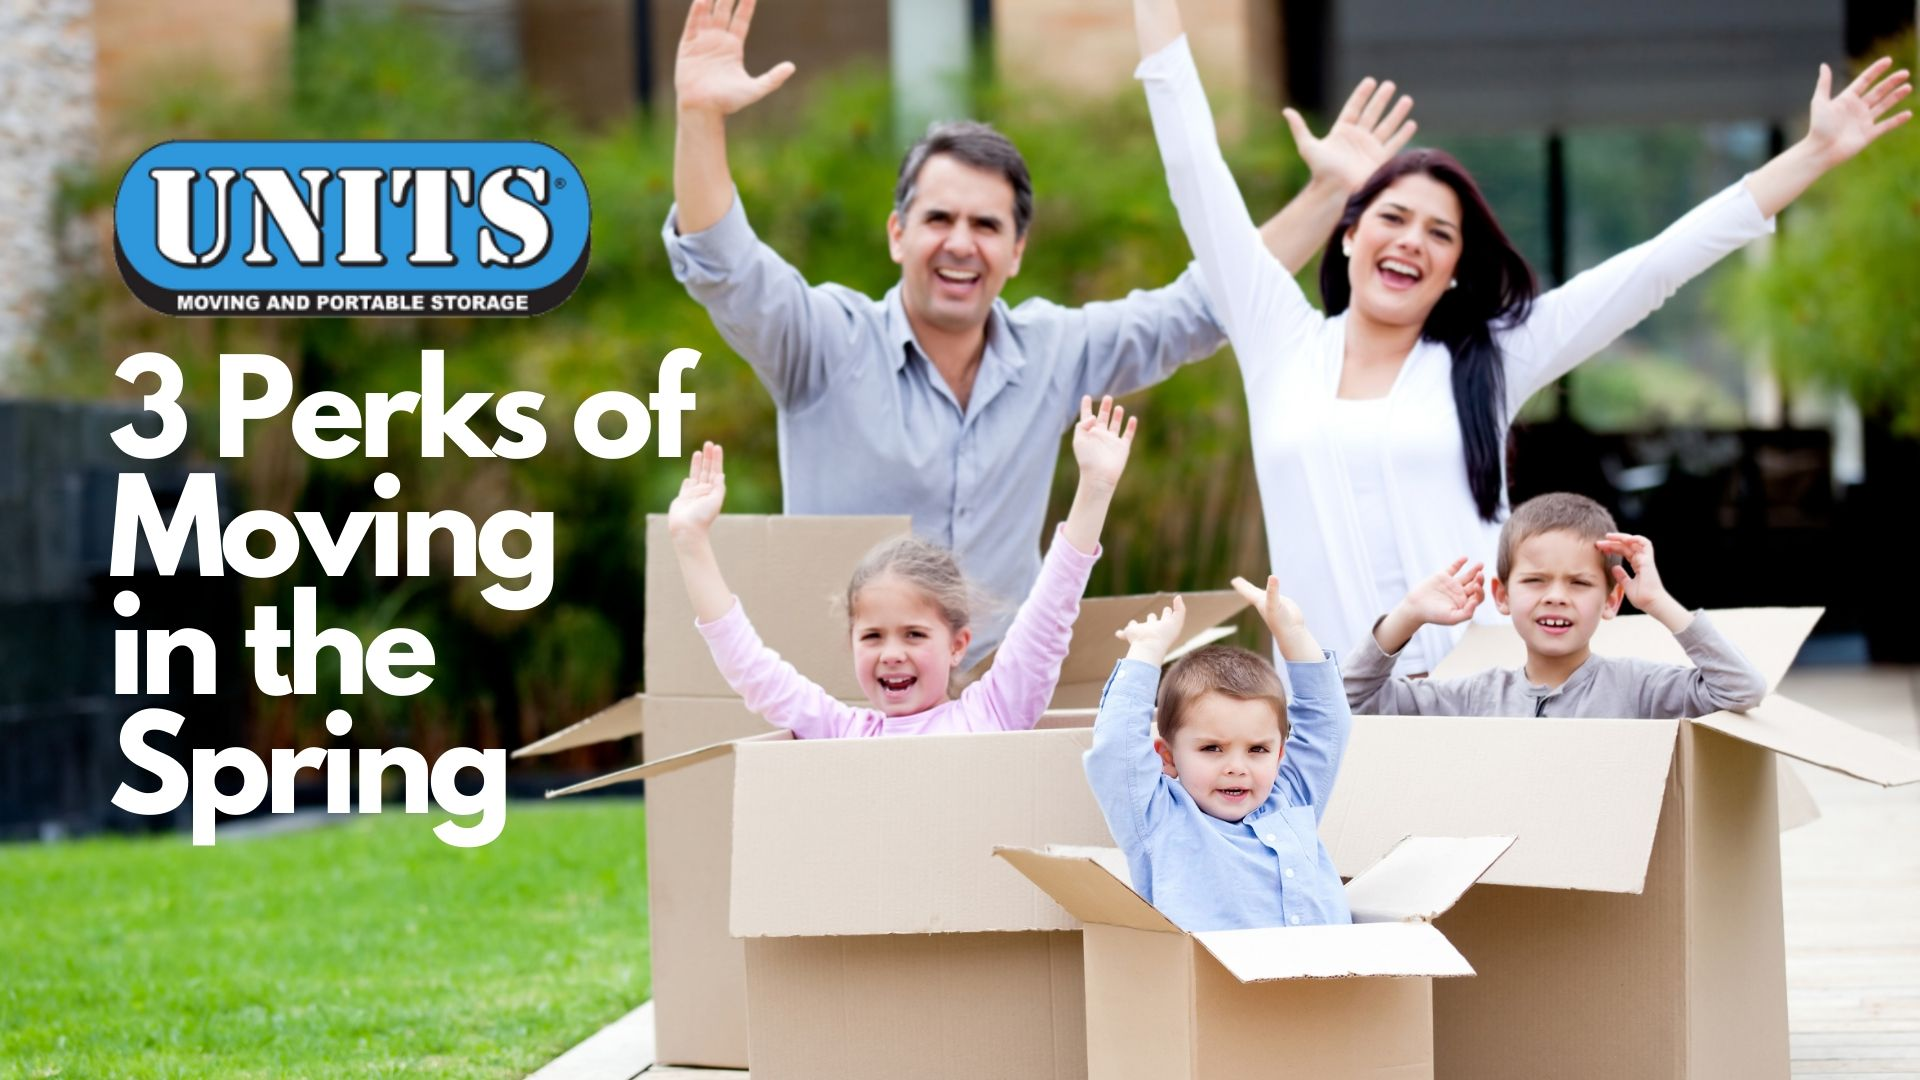 3 Perks of Moving in the Spring | UNITS Moving & Portable Storage